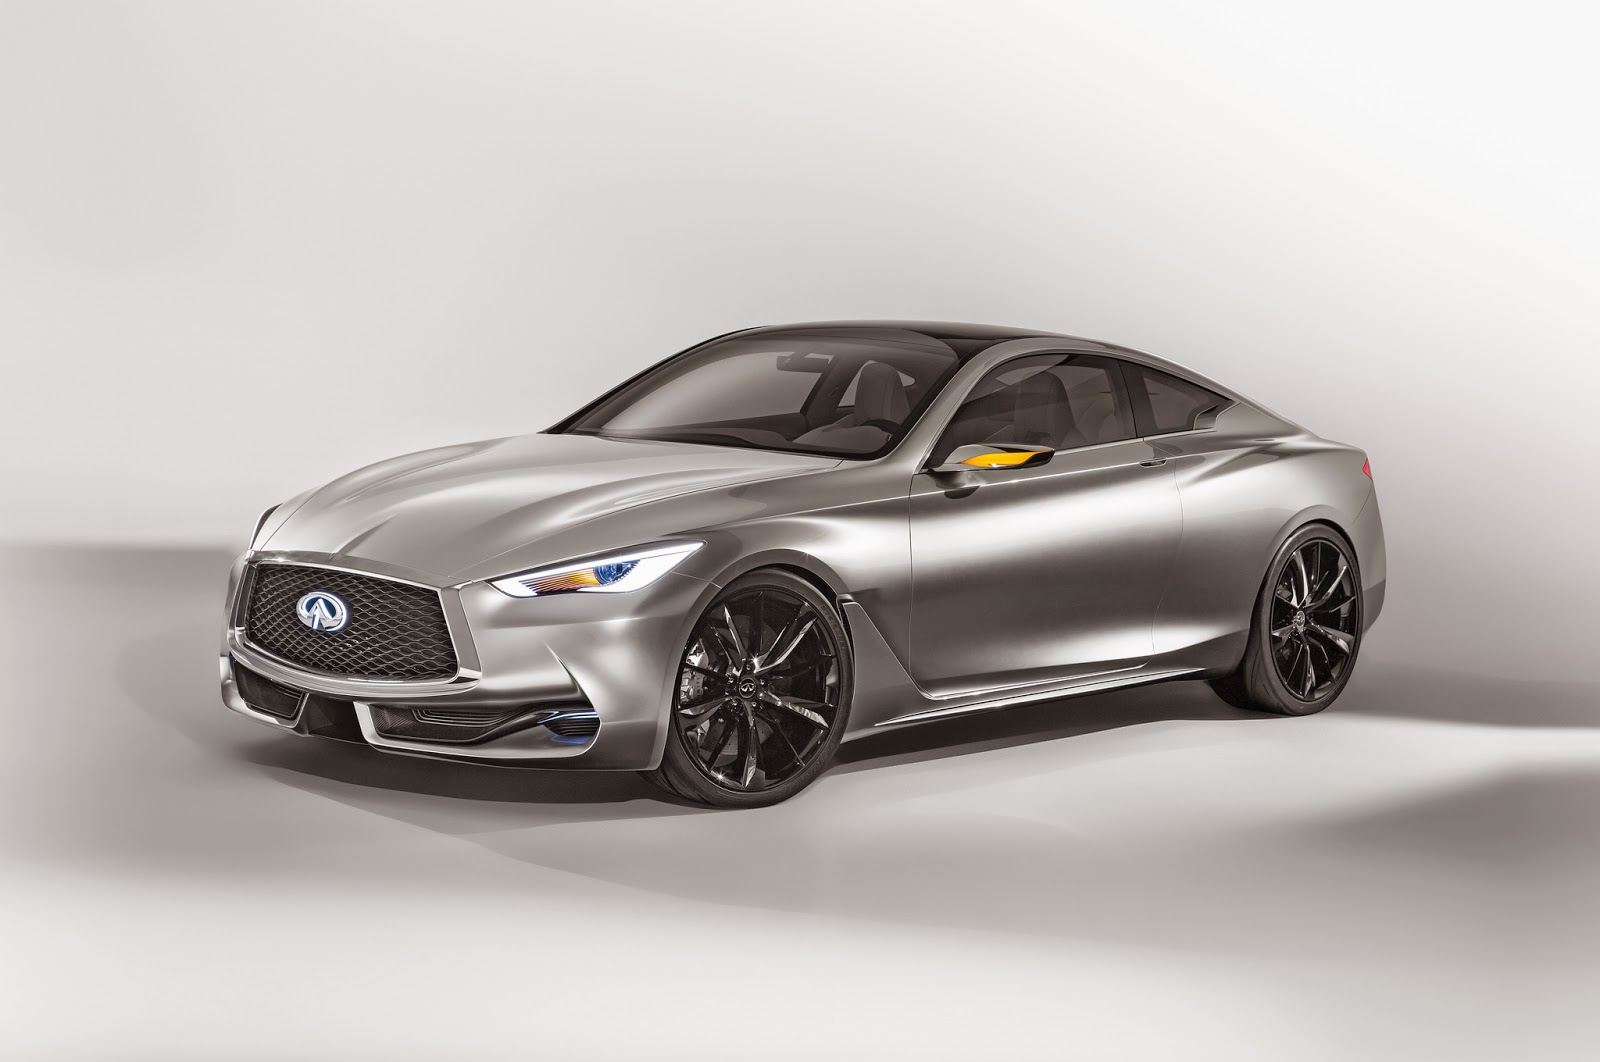 price get infinity coupe sedan infiniti big facelifted models enthusiast and increases prices g